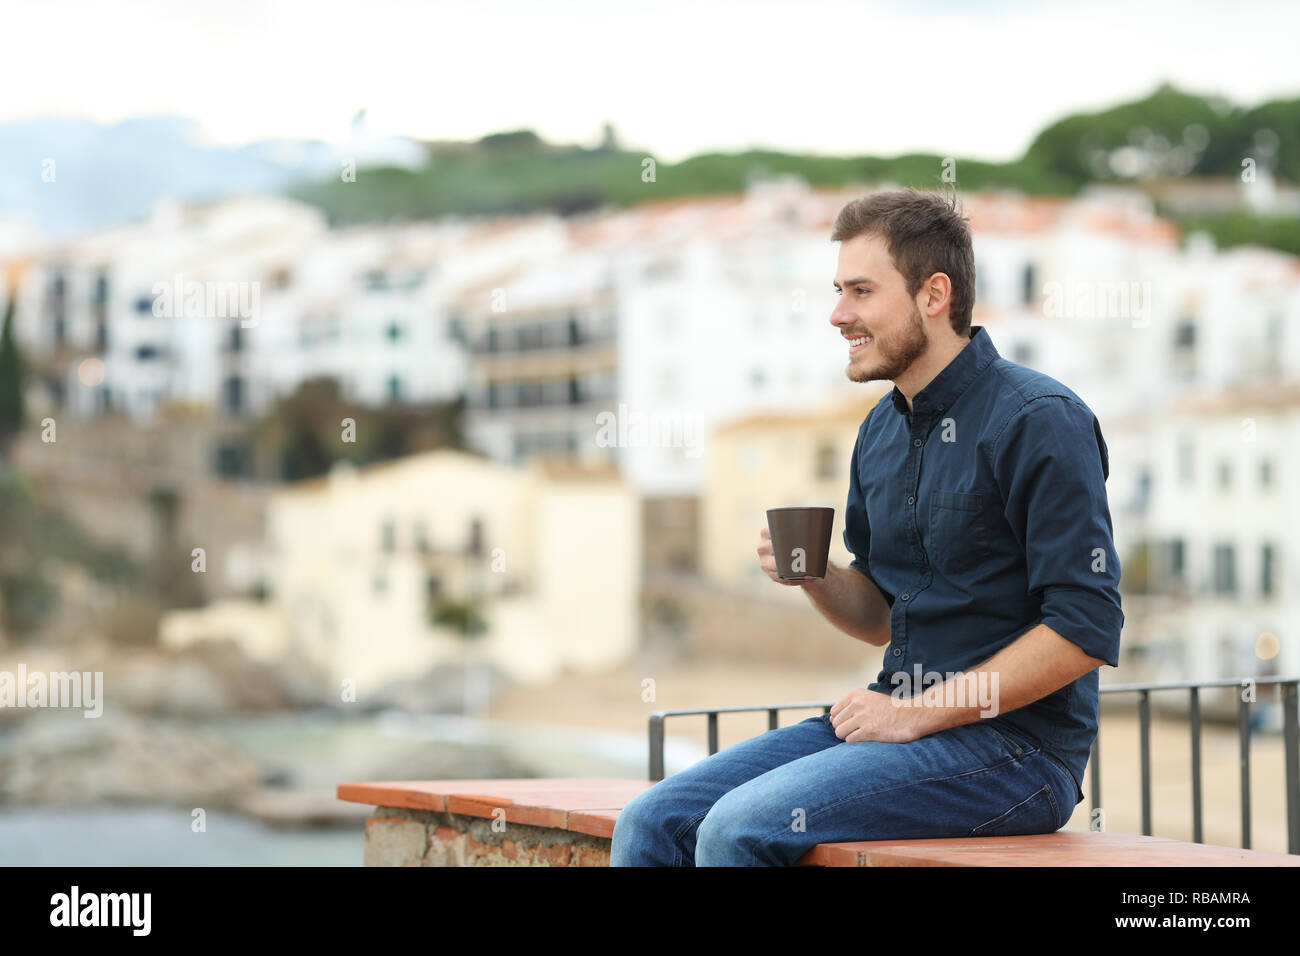 Happy man drinking coffee and looking away sitting on a ledge in a coast town on vacation - Stock Image